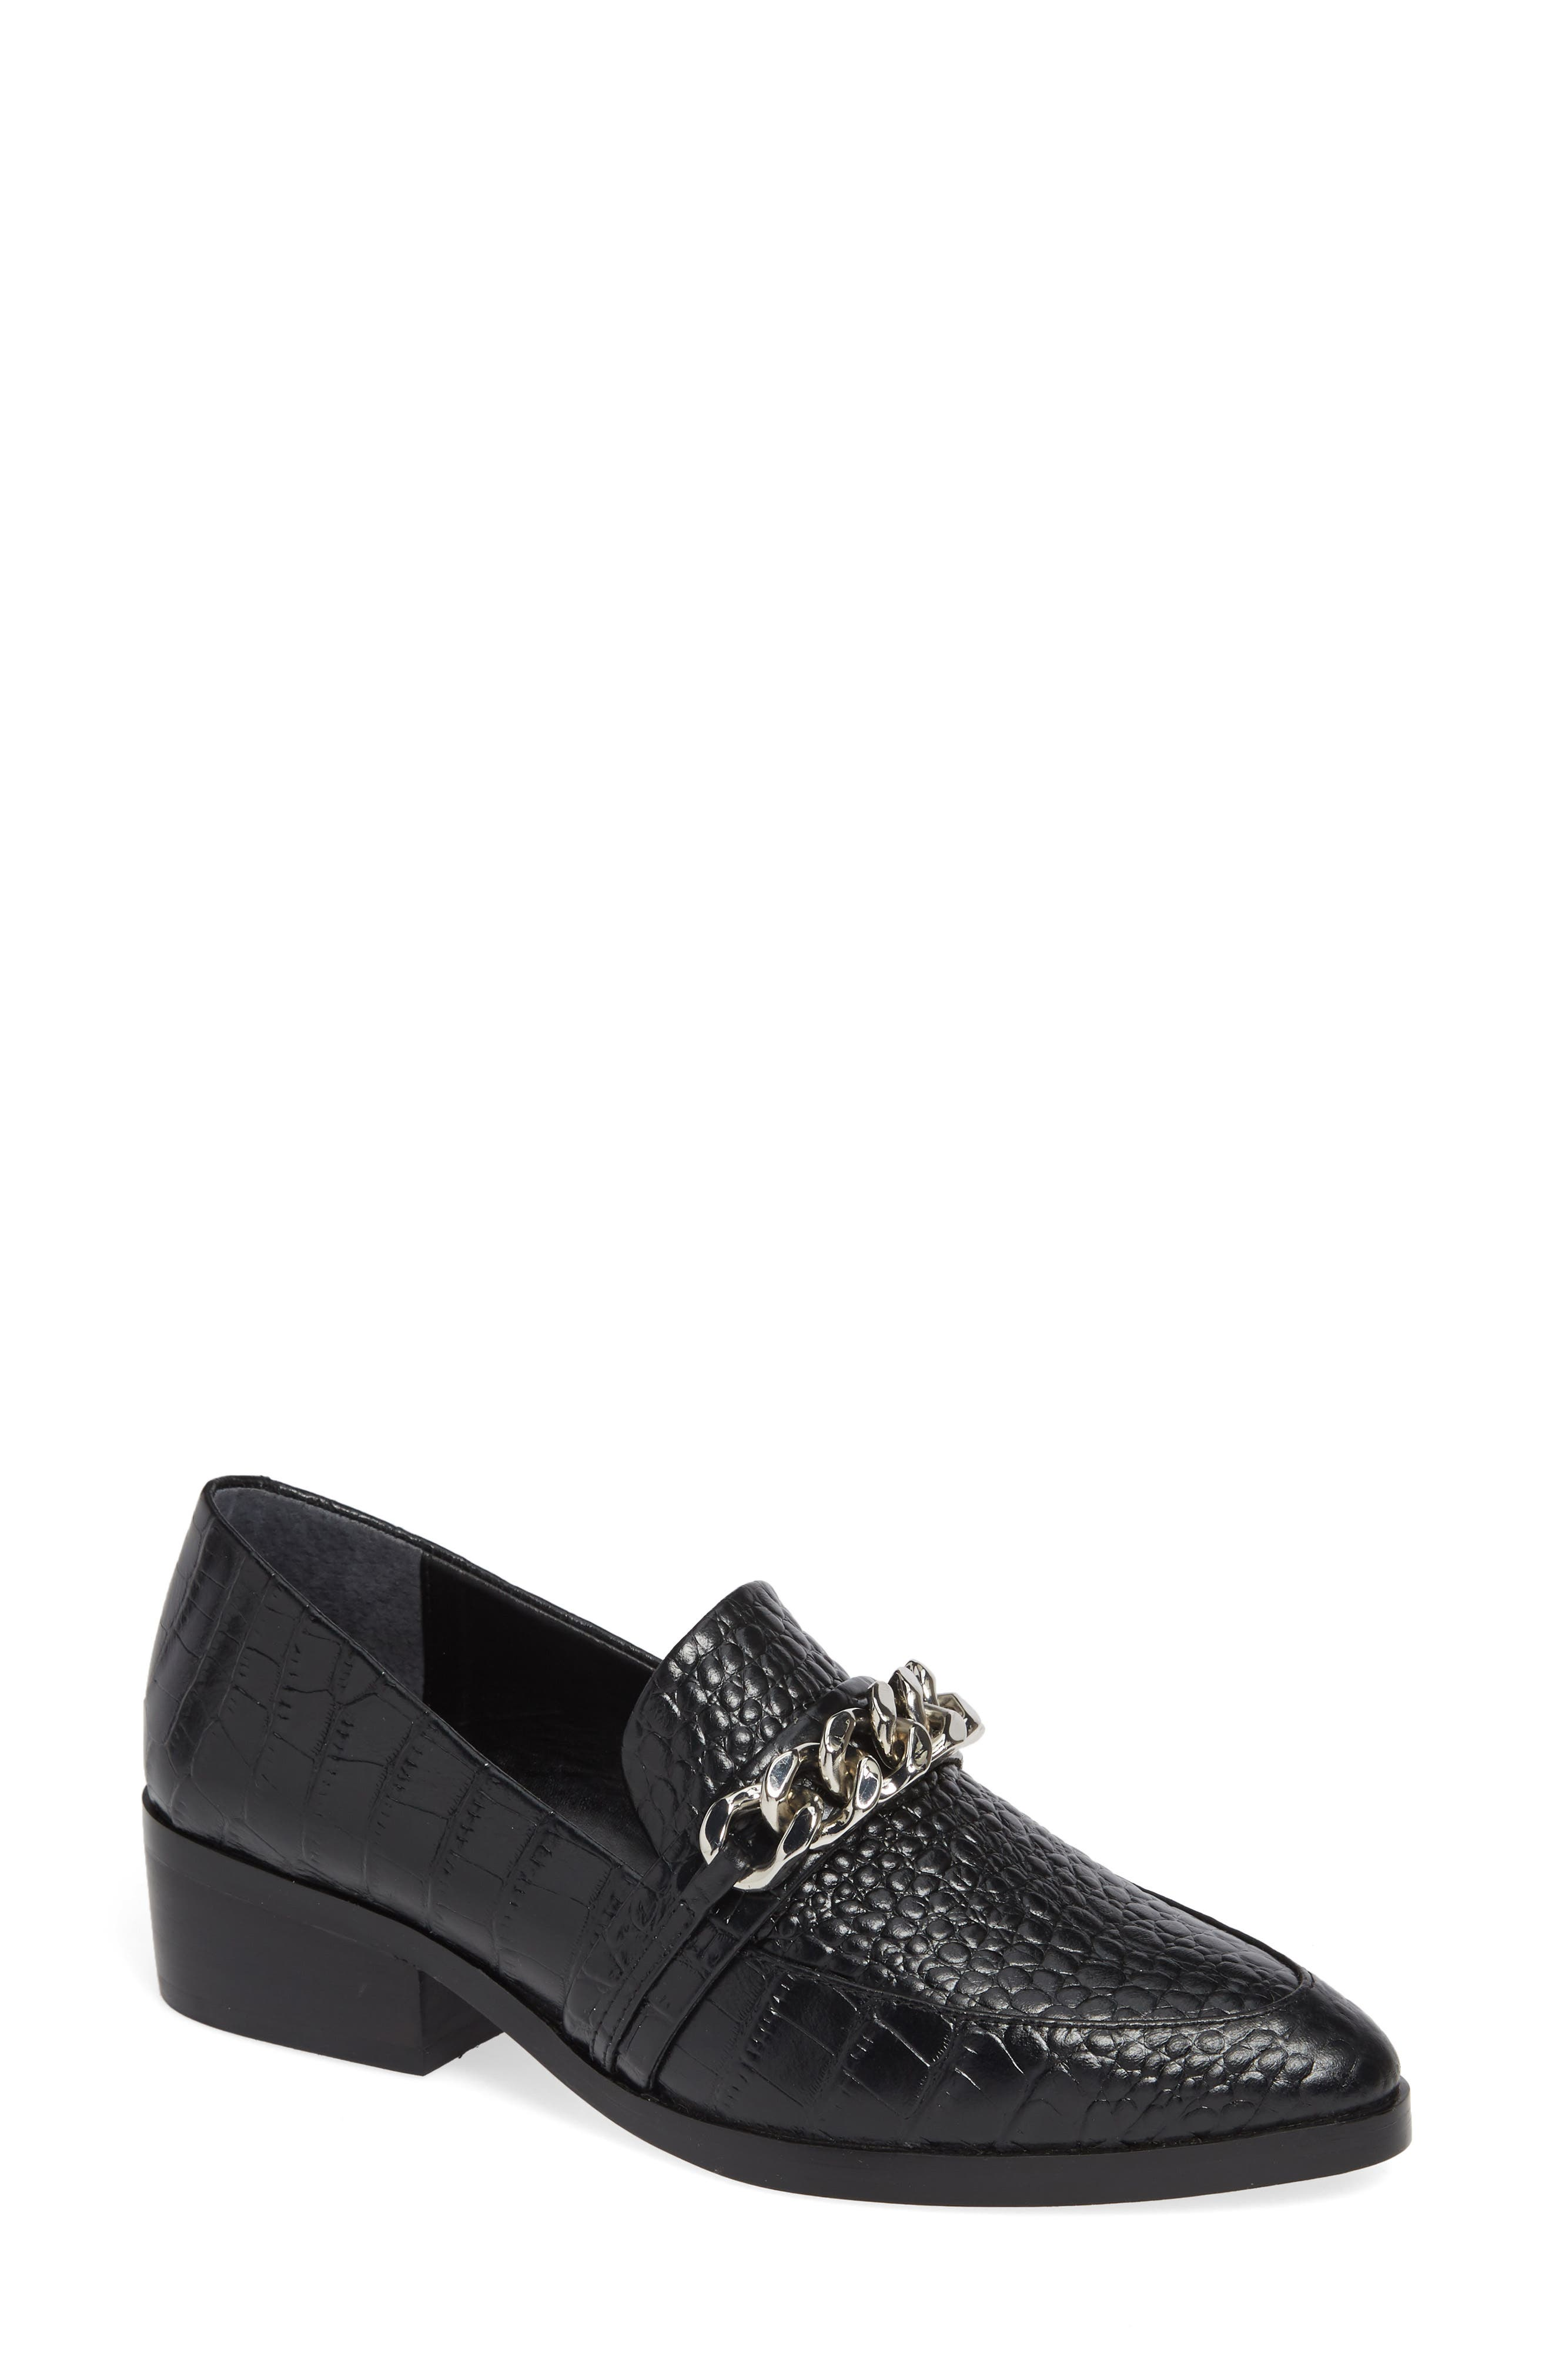 Molly Loafer,                         Main,                         color, BLACK CROC LEATHER